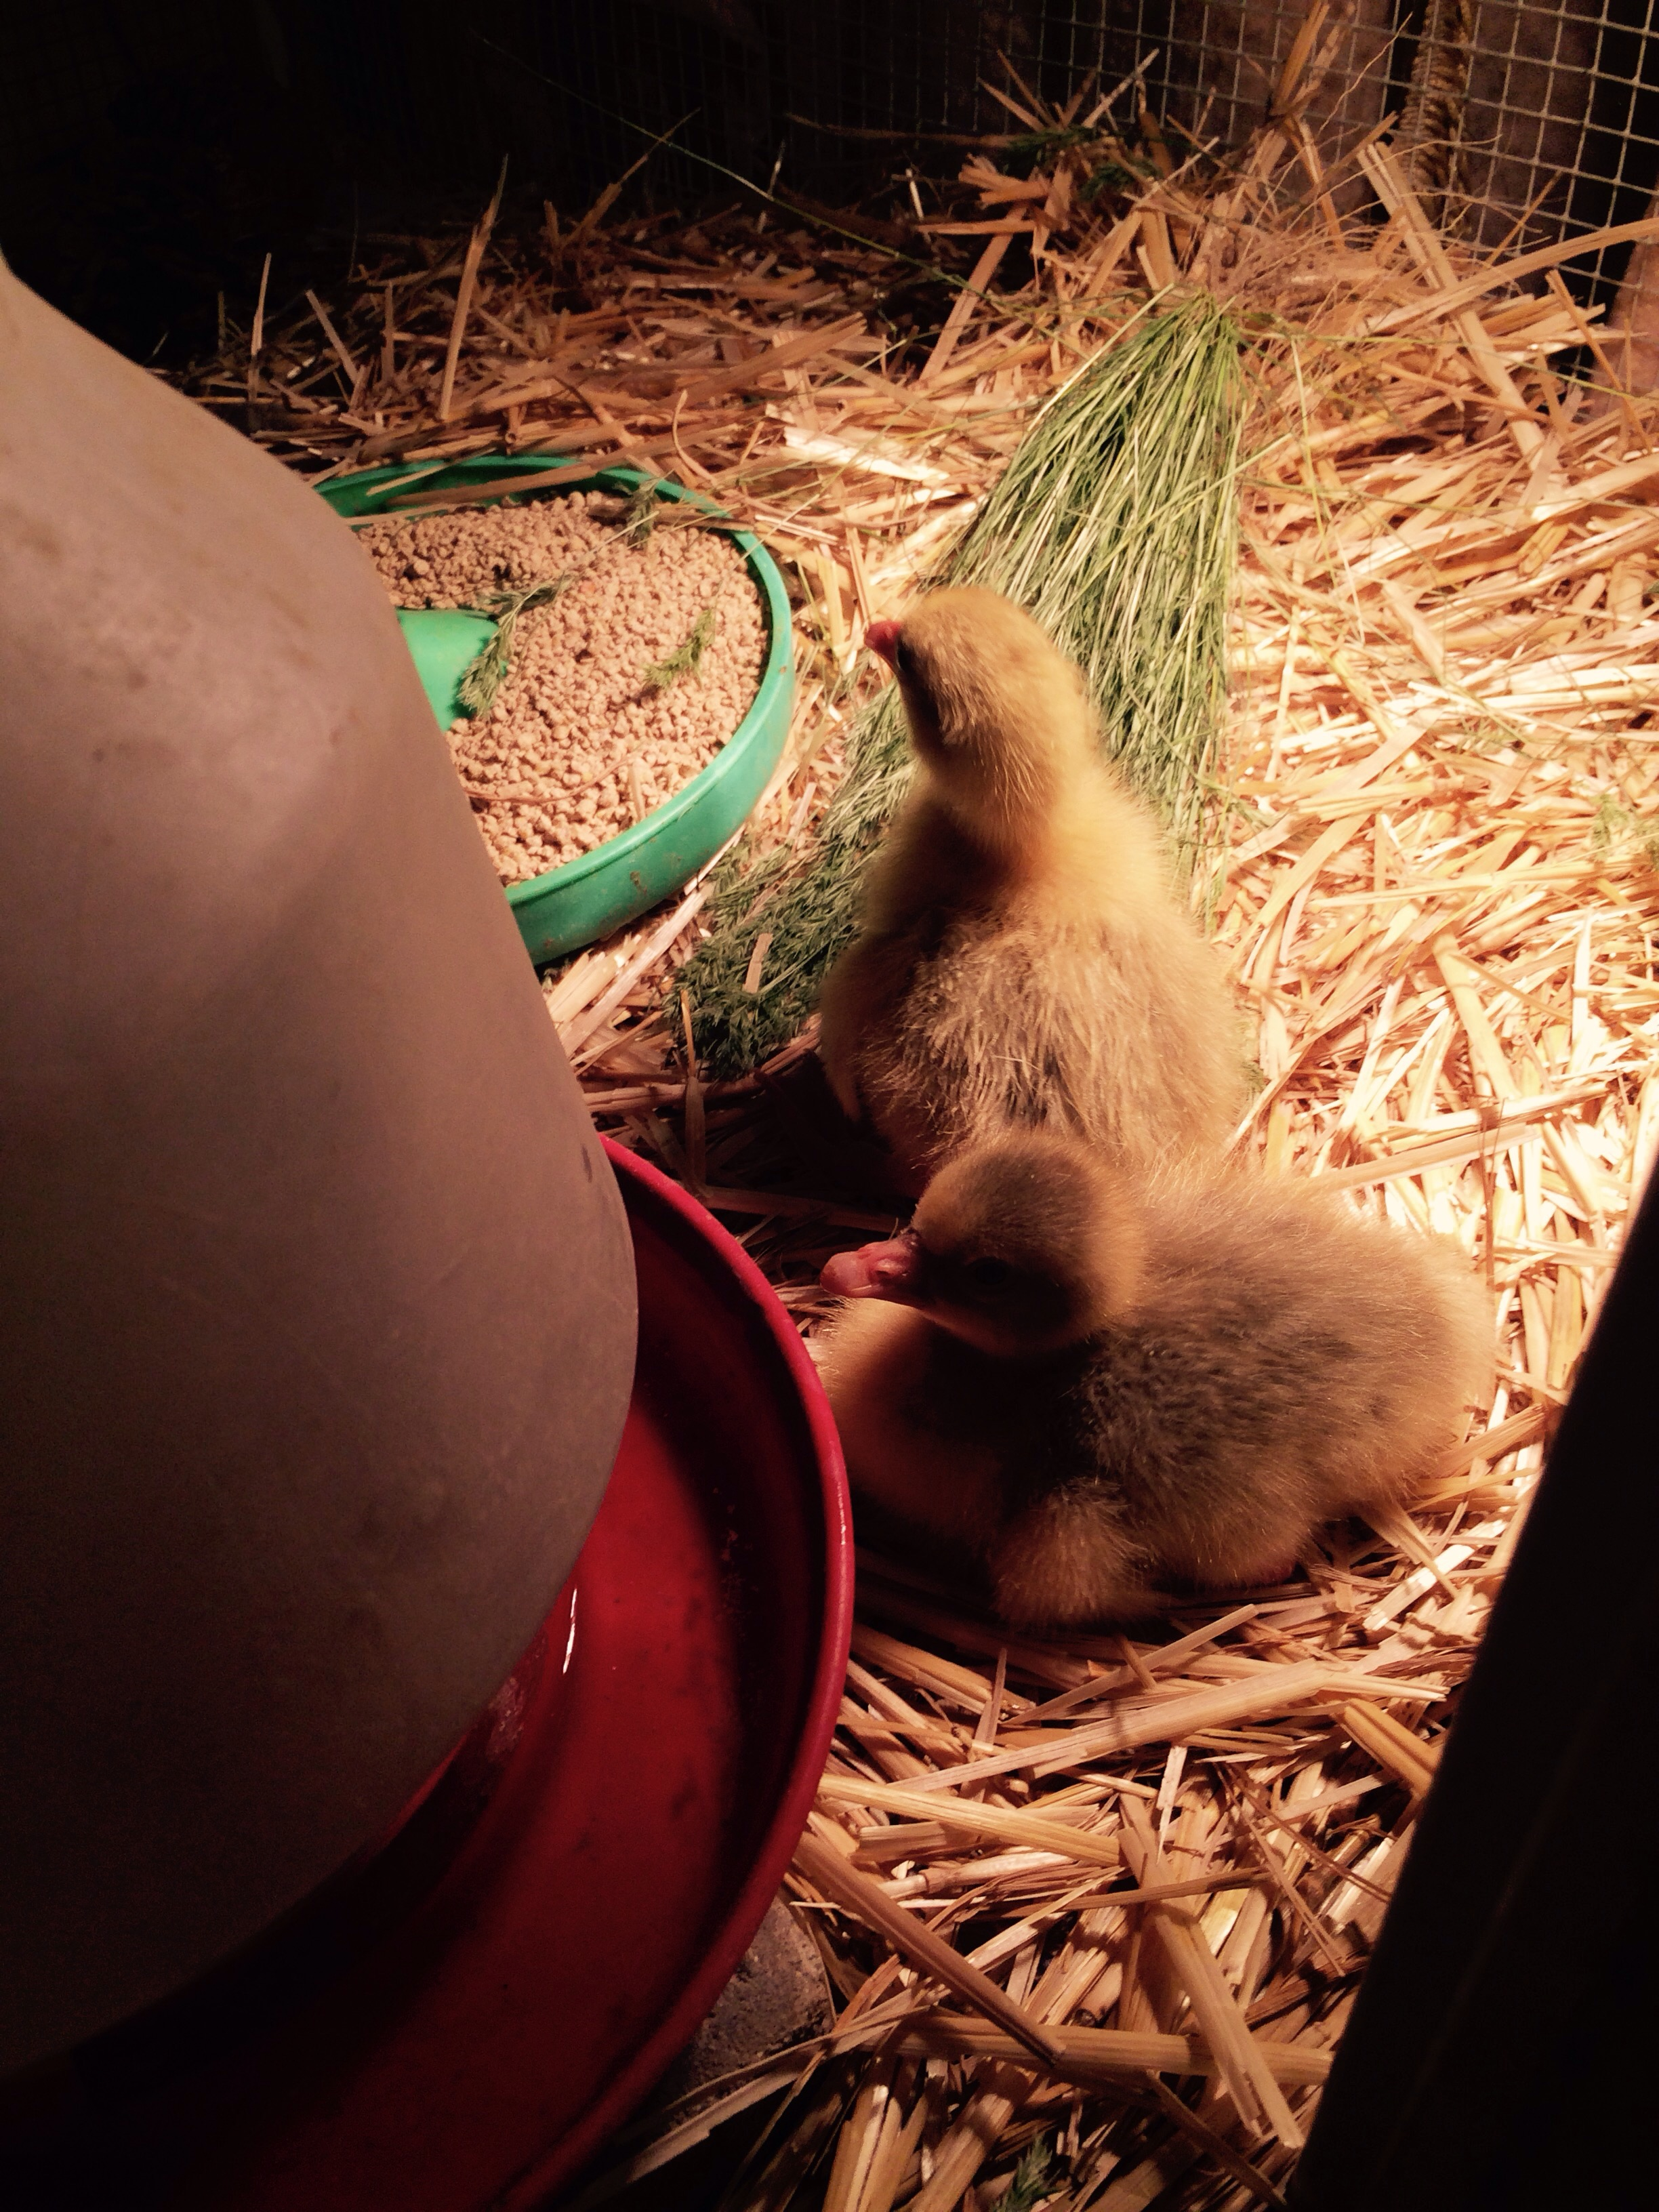 Our second baby hatched the wire and stick nest was a good idea until I had to climb on my hands and knees to get the babies we put the hatchlings under lights in a safe cage until the mother finishes hatching her eggs then we will move her and babies back together in the barn